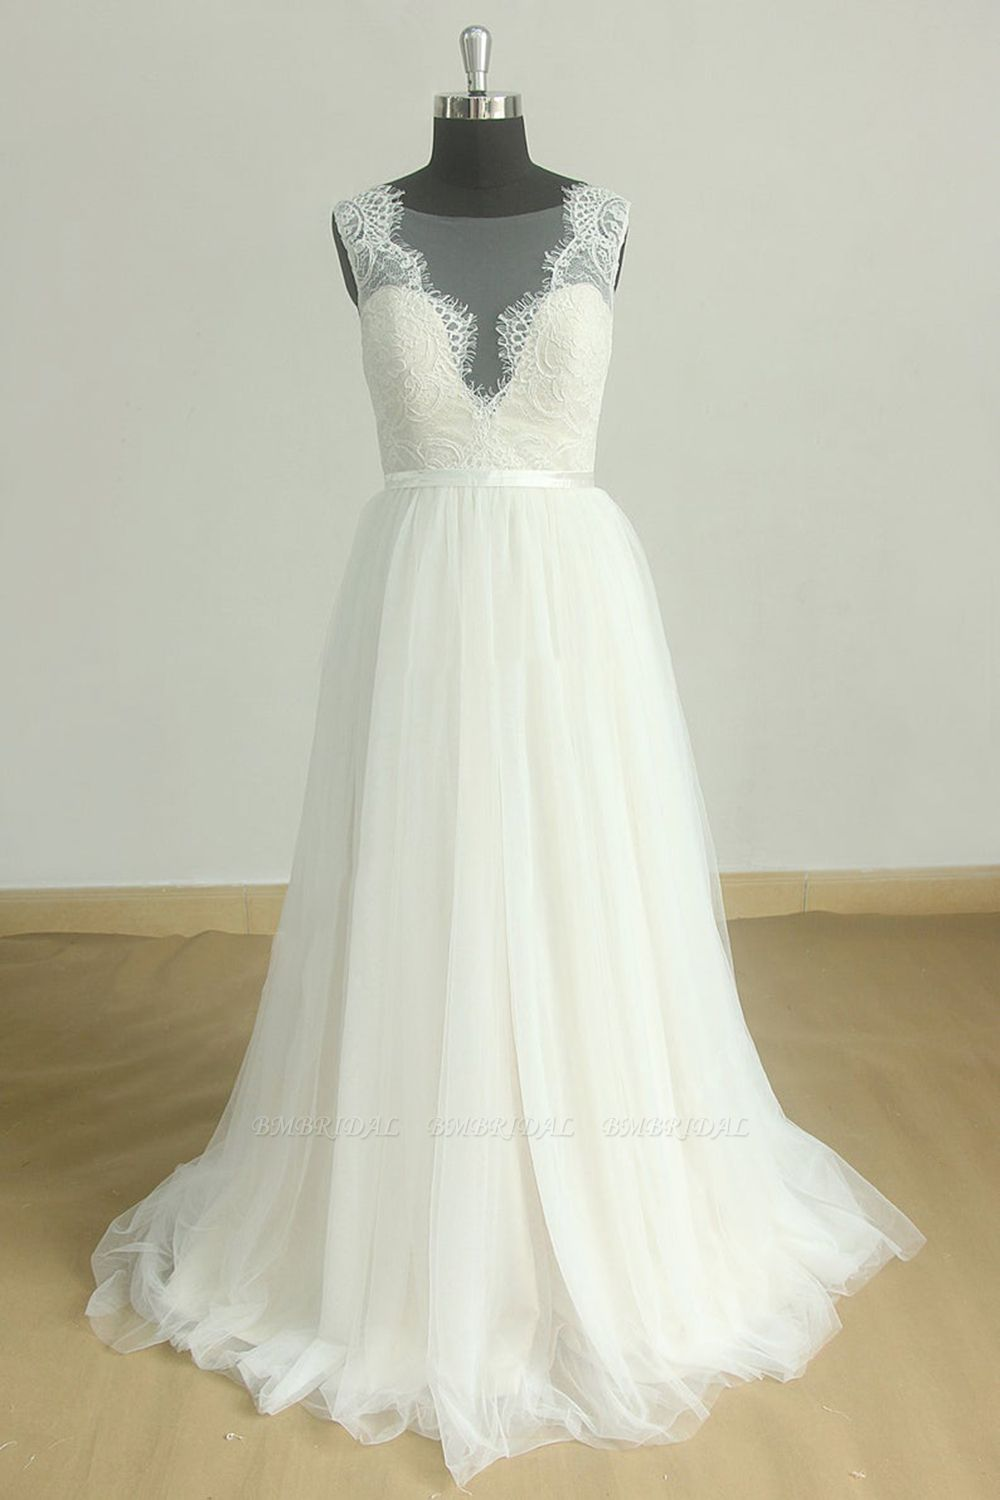 BMbridal Affordable Jewel Sleeveless Tulle Wedding Dress Appliques Ruffles White Bridal Gowns On Sale